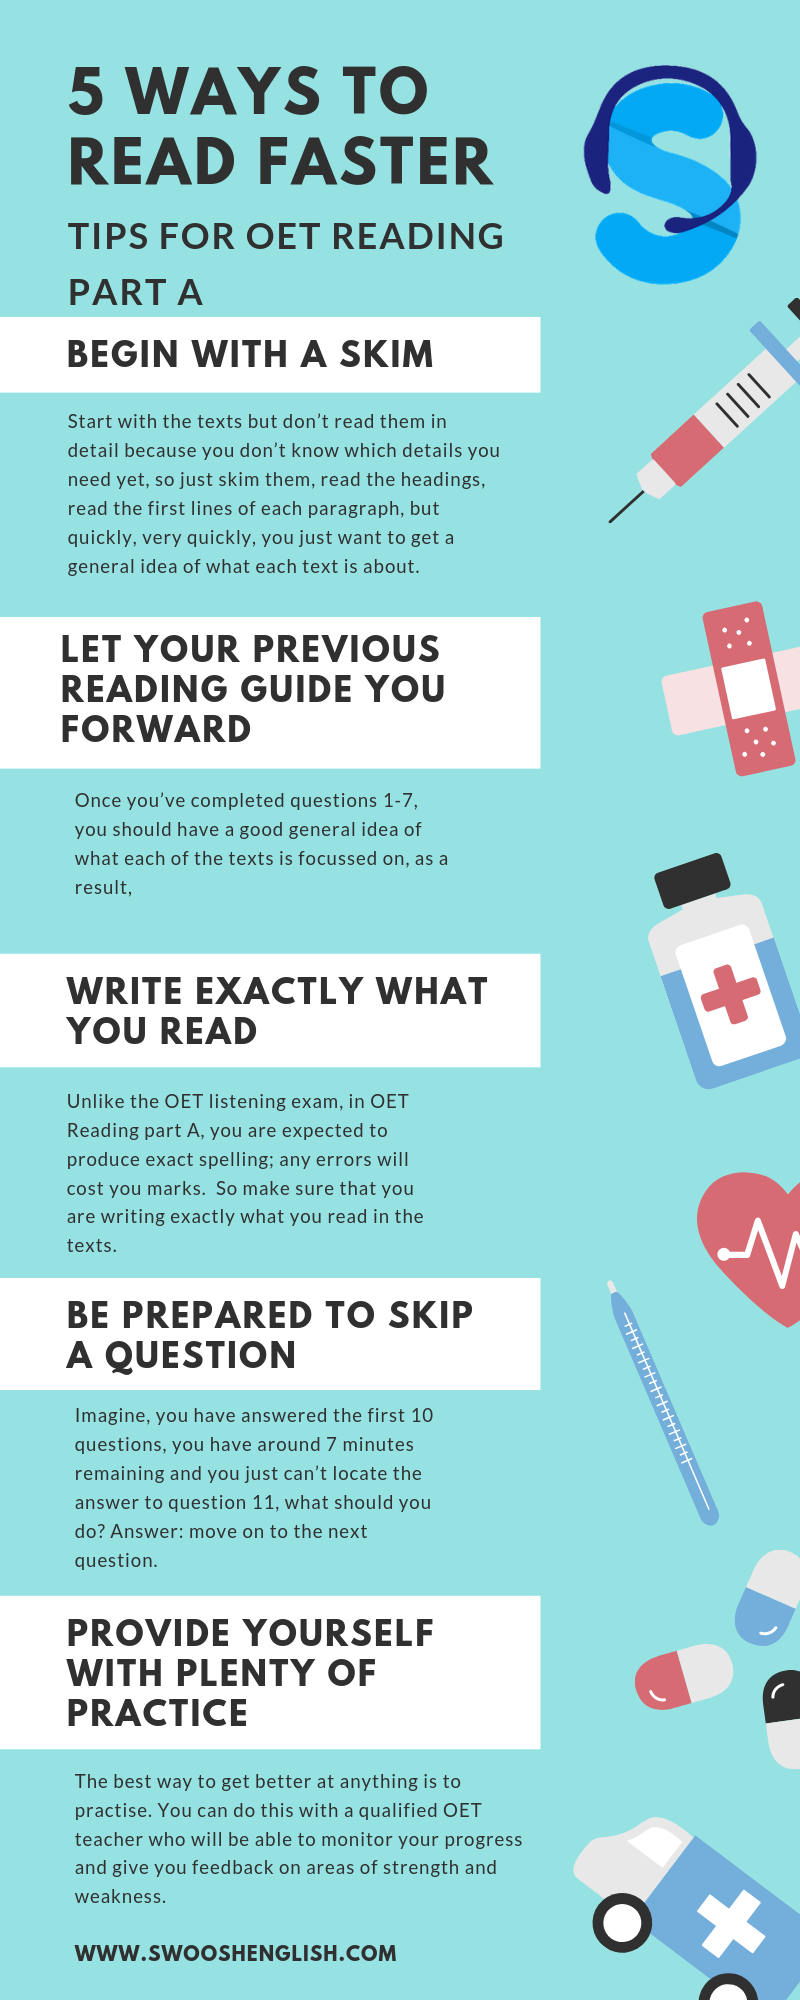 5-Ways-To-Read-Faster-Tips-For-OET-Reading-Part-A